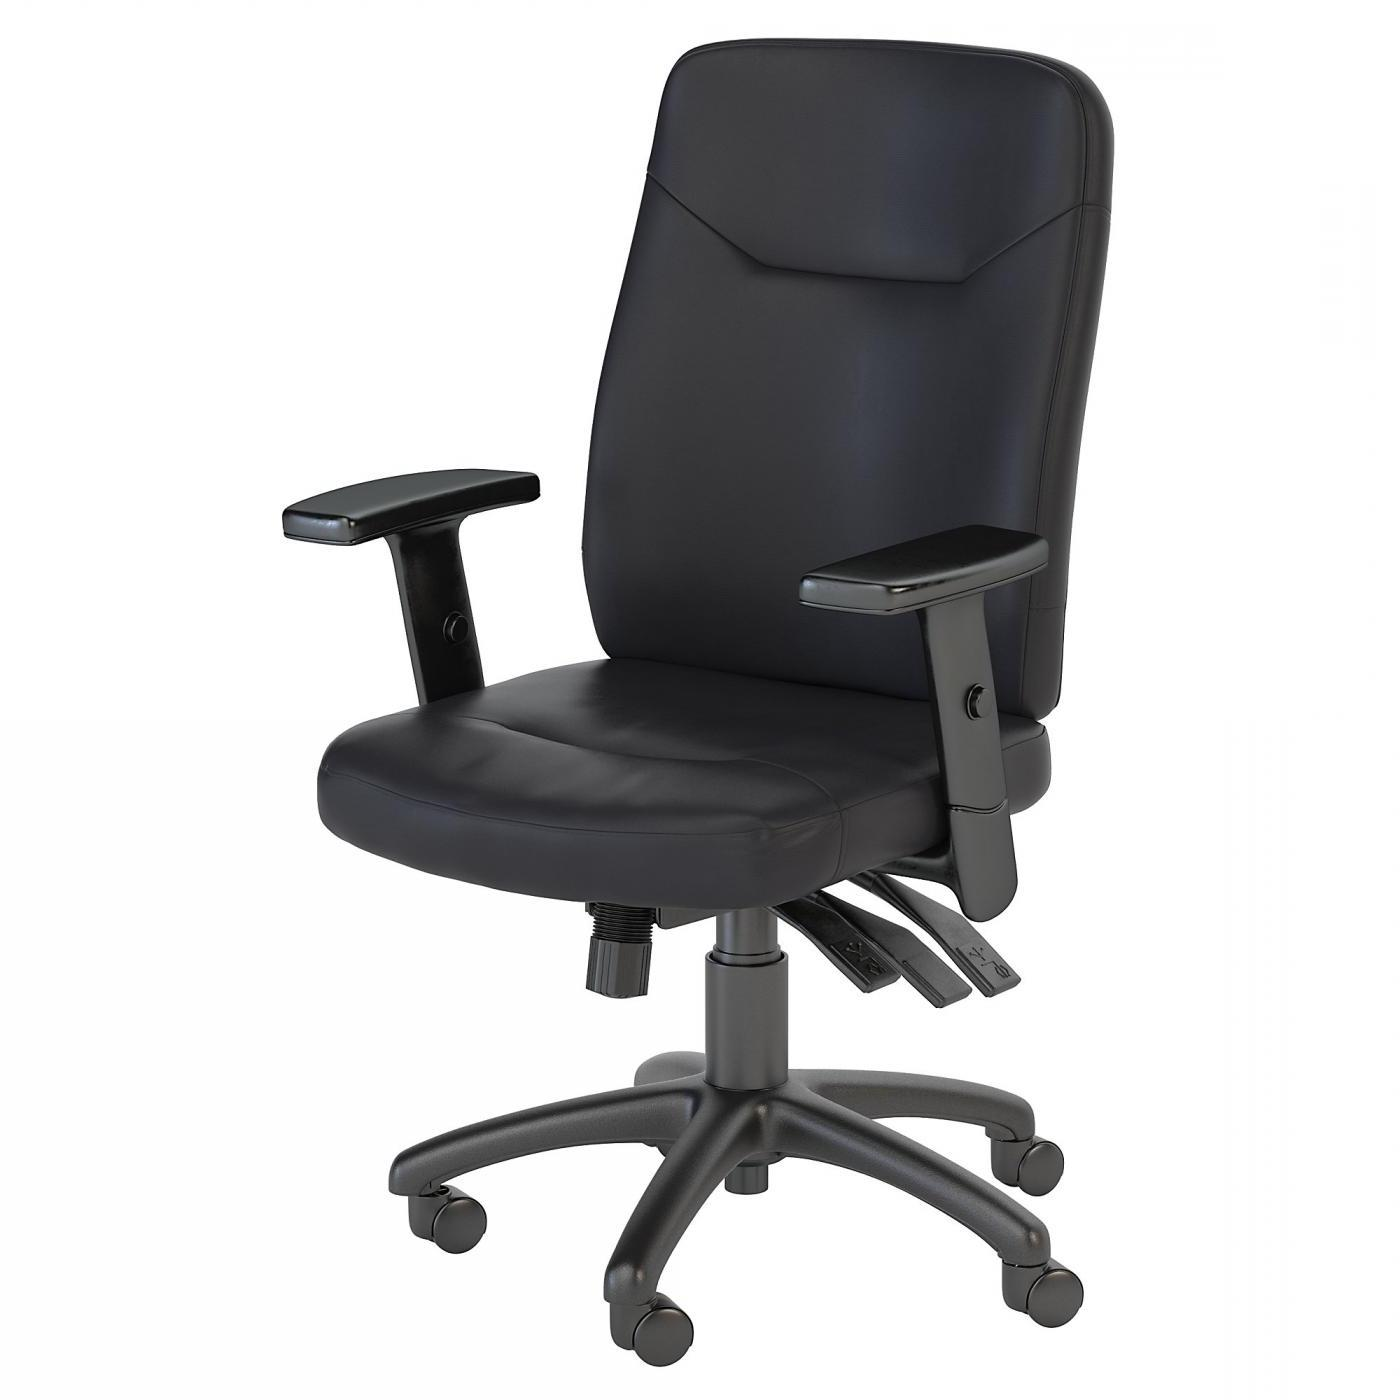 BUSH BUSINESS FURNITURE STANTON HIGH BACK MULTIFUNCTION LEATHER EXECUTIVE OFFICE CHAIR. FREE SHIPPING.